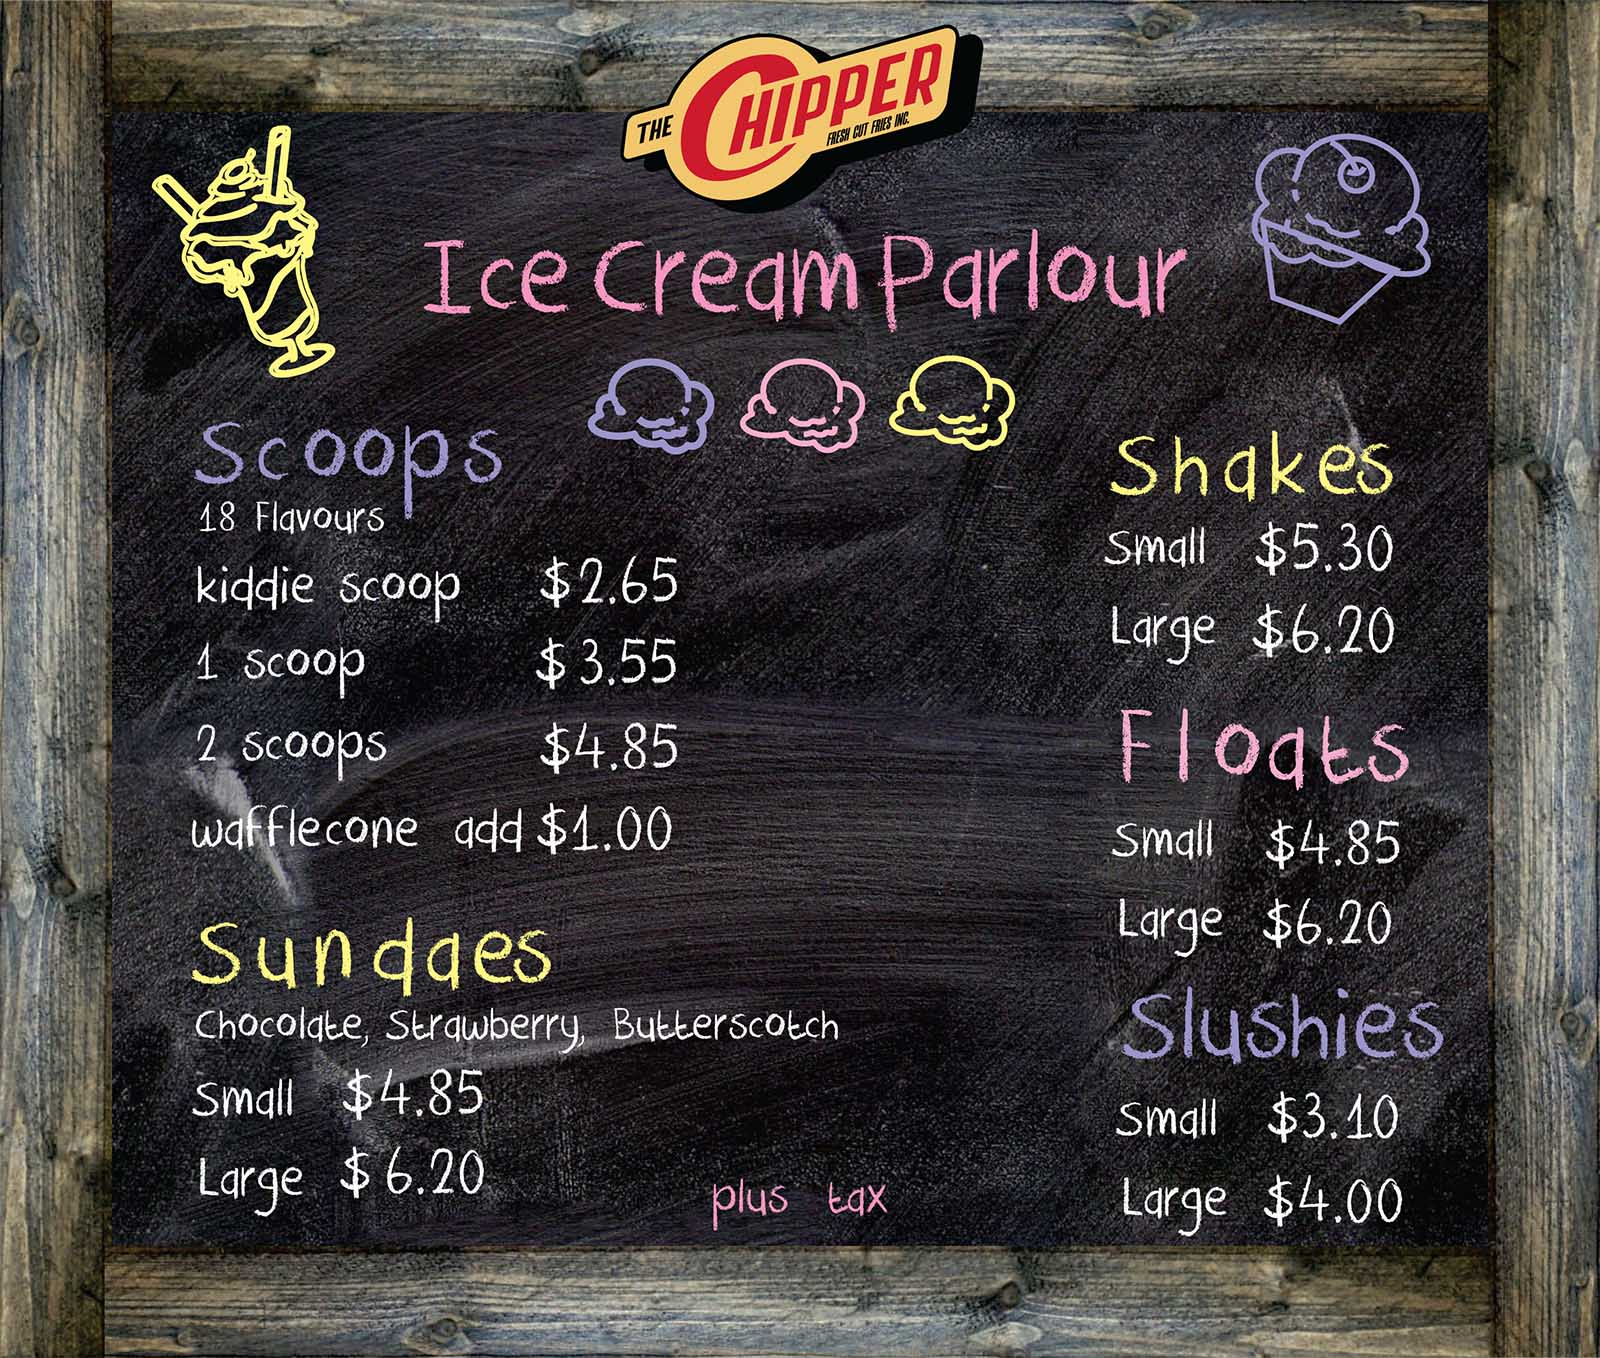 Ice Cream at The Chipper